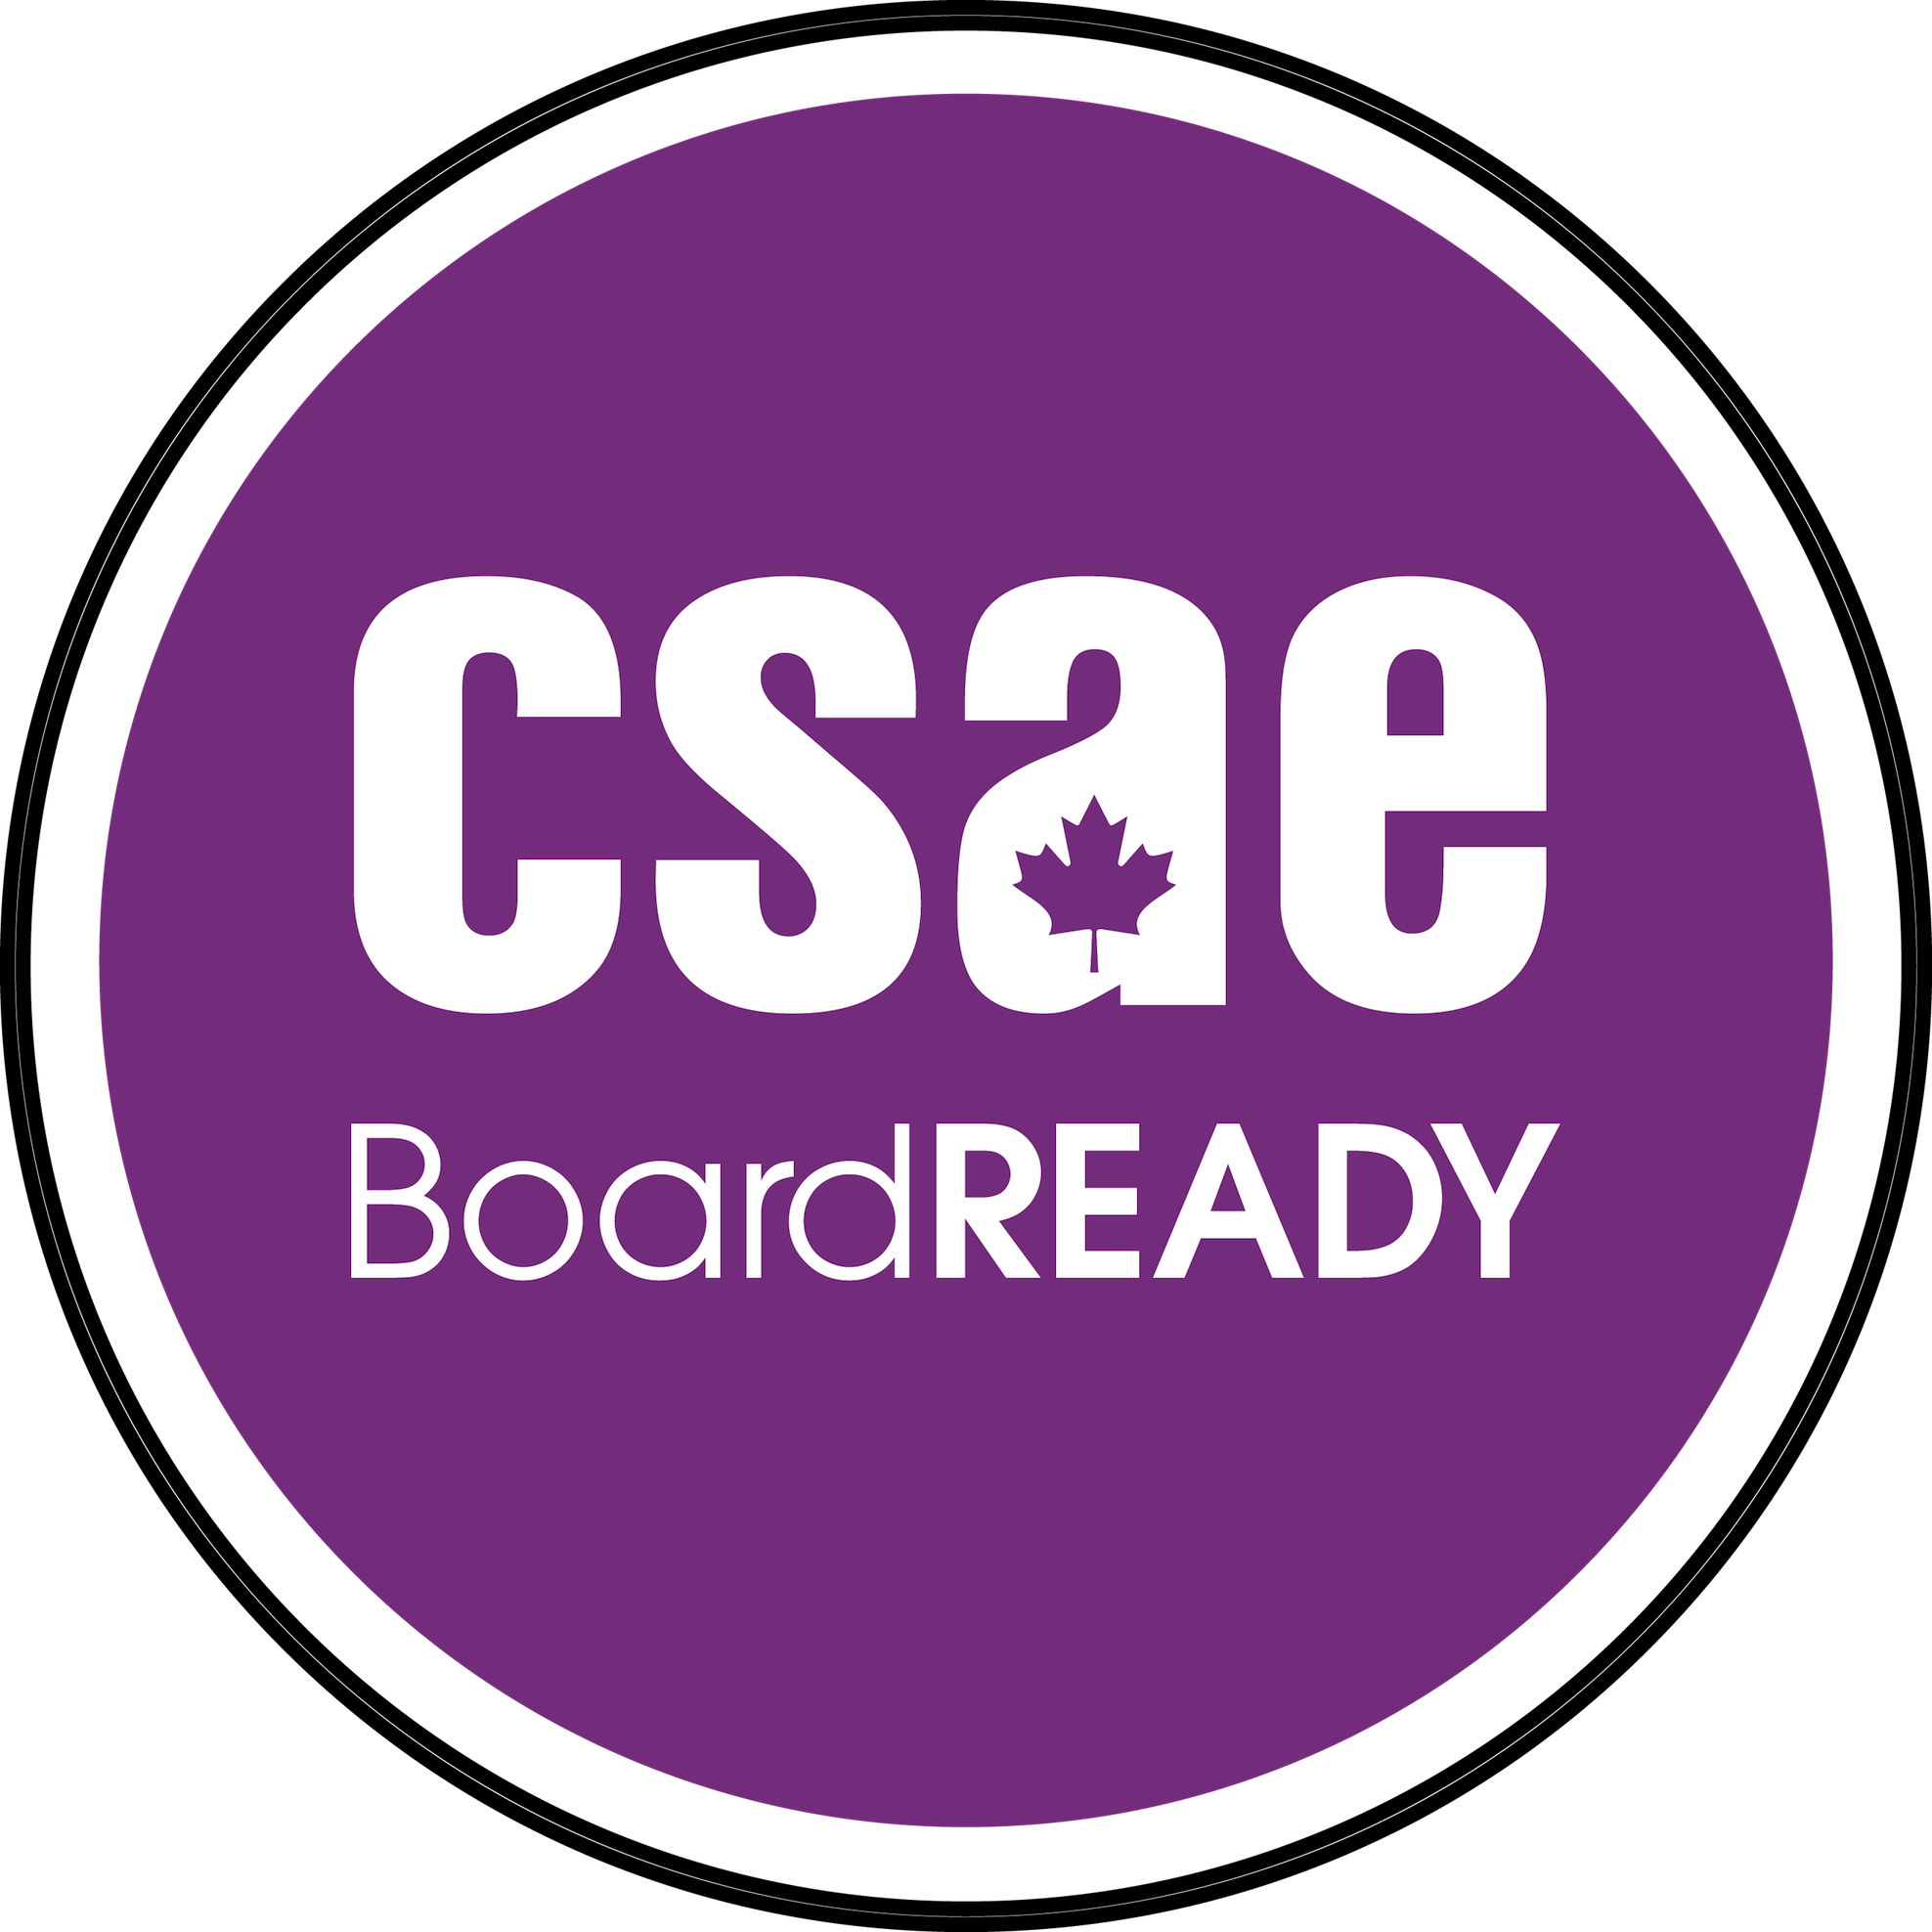 CSAE BoardREADY Newsletter